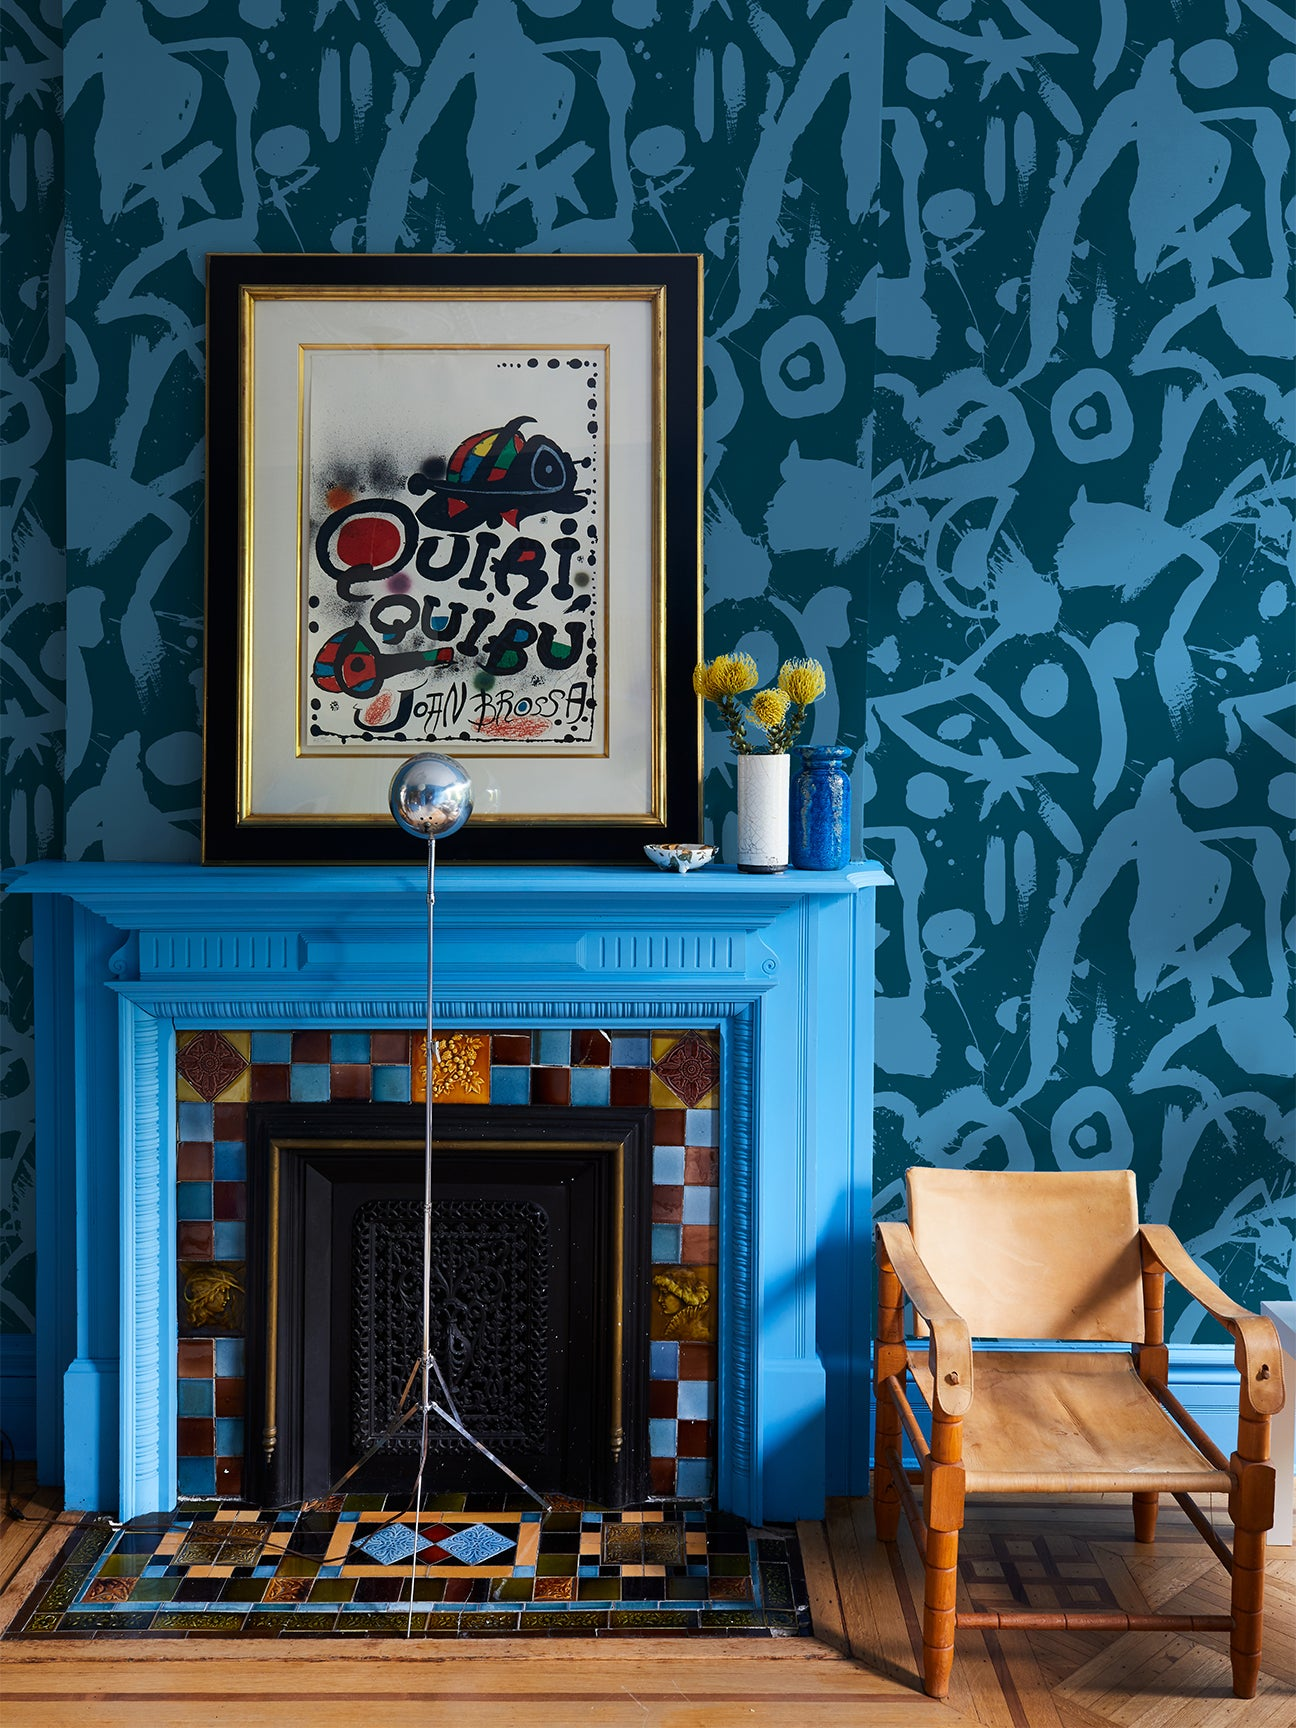 For a Truly One-of-a-Kind Fireplace, Grab Your Paint Brush